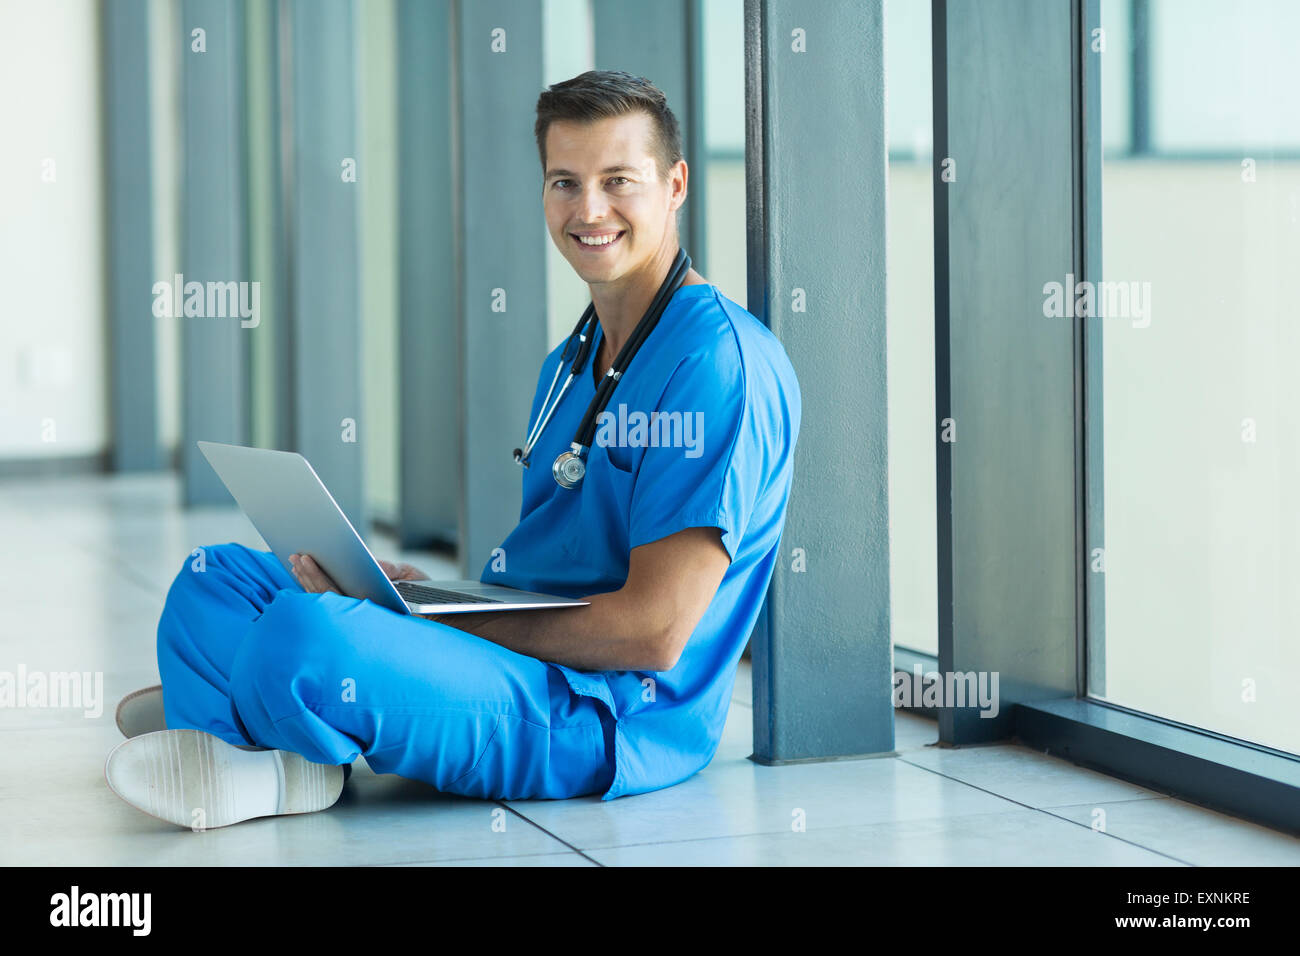 medical worker sitting on hospital floor and using laptop computer - Stock Image